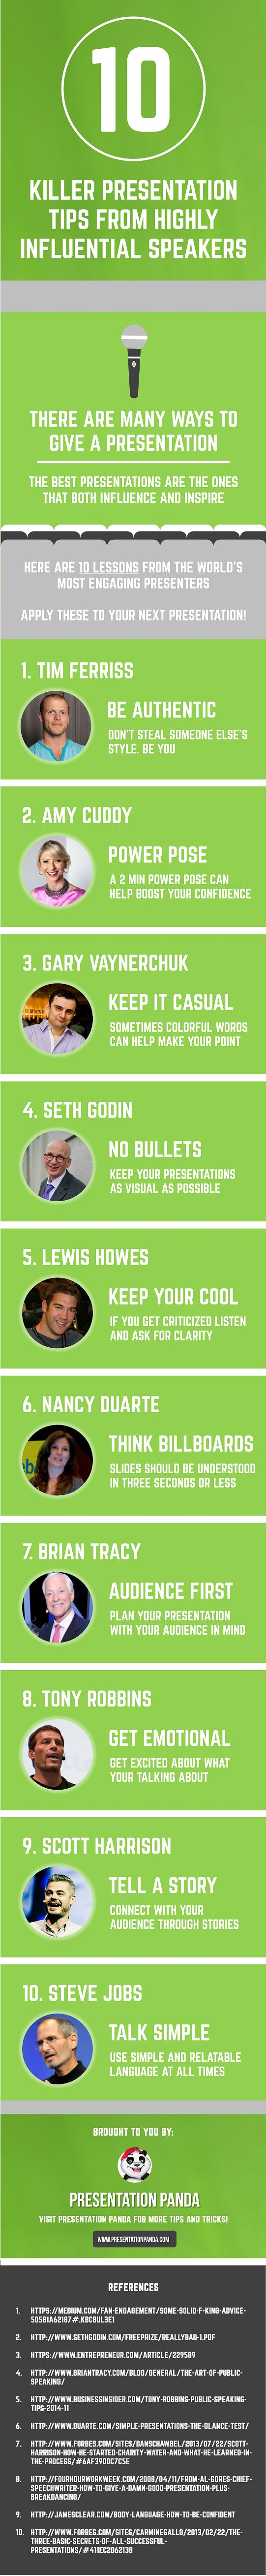 Amazing strategies to use during your next speaking gig to grow your audience engagement.